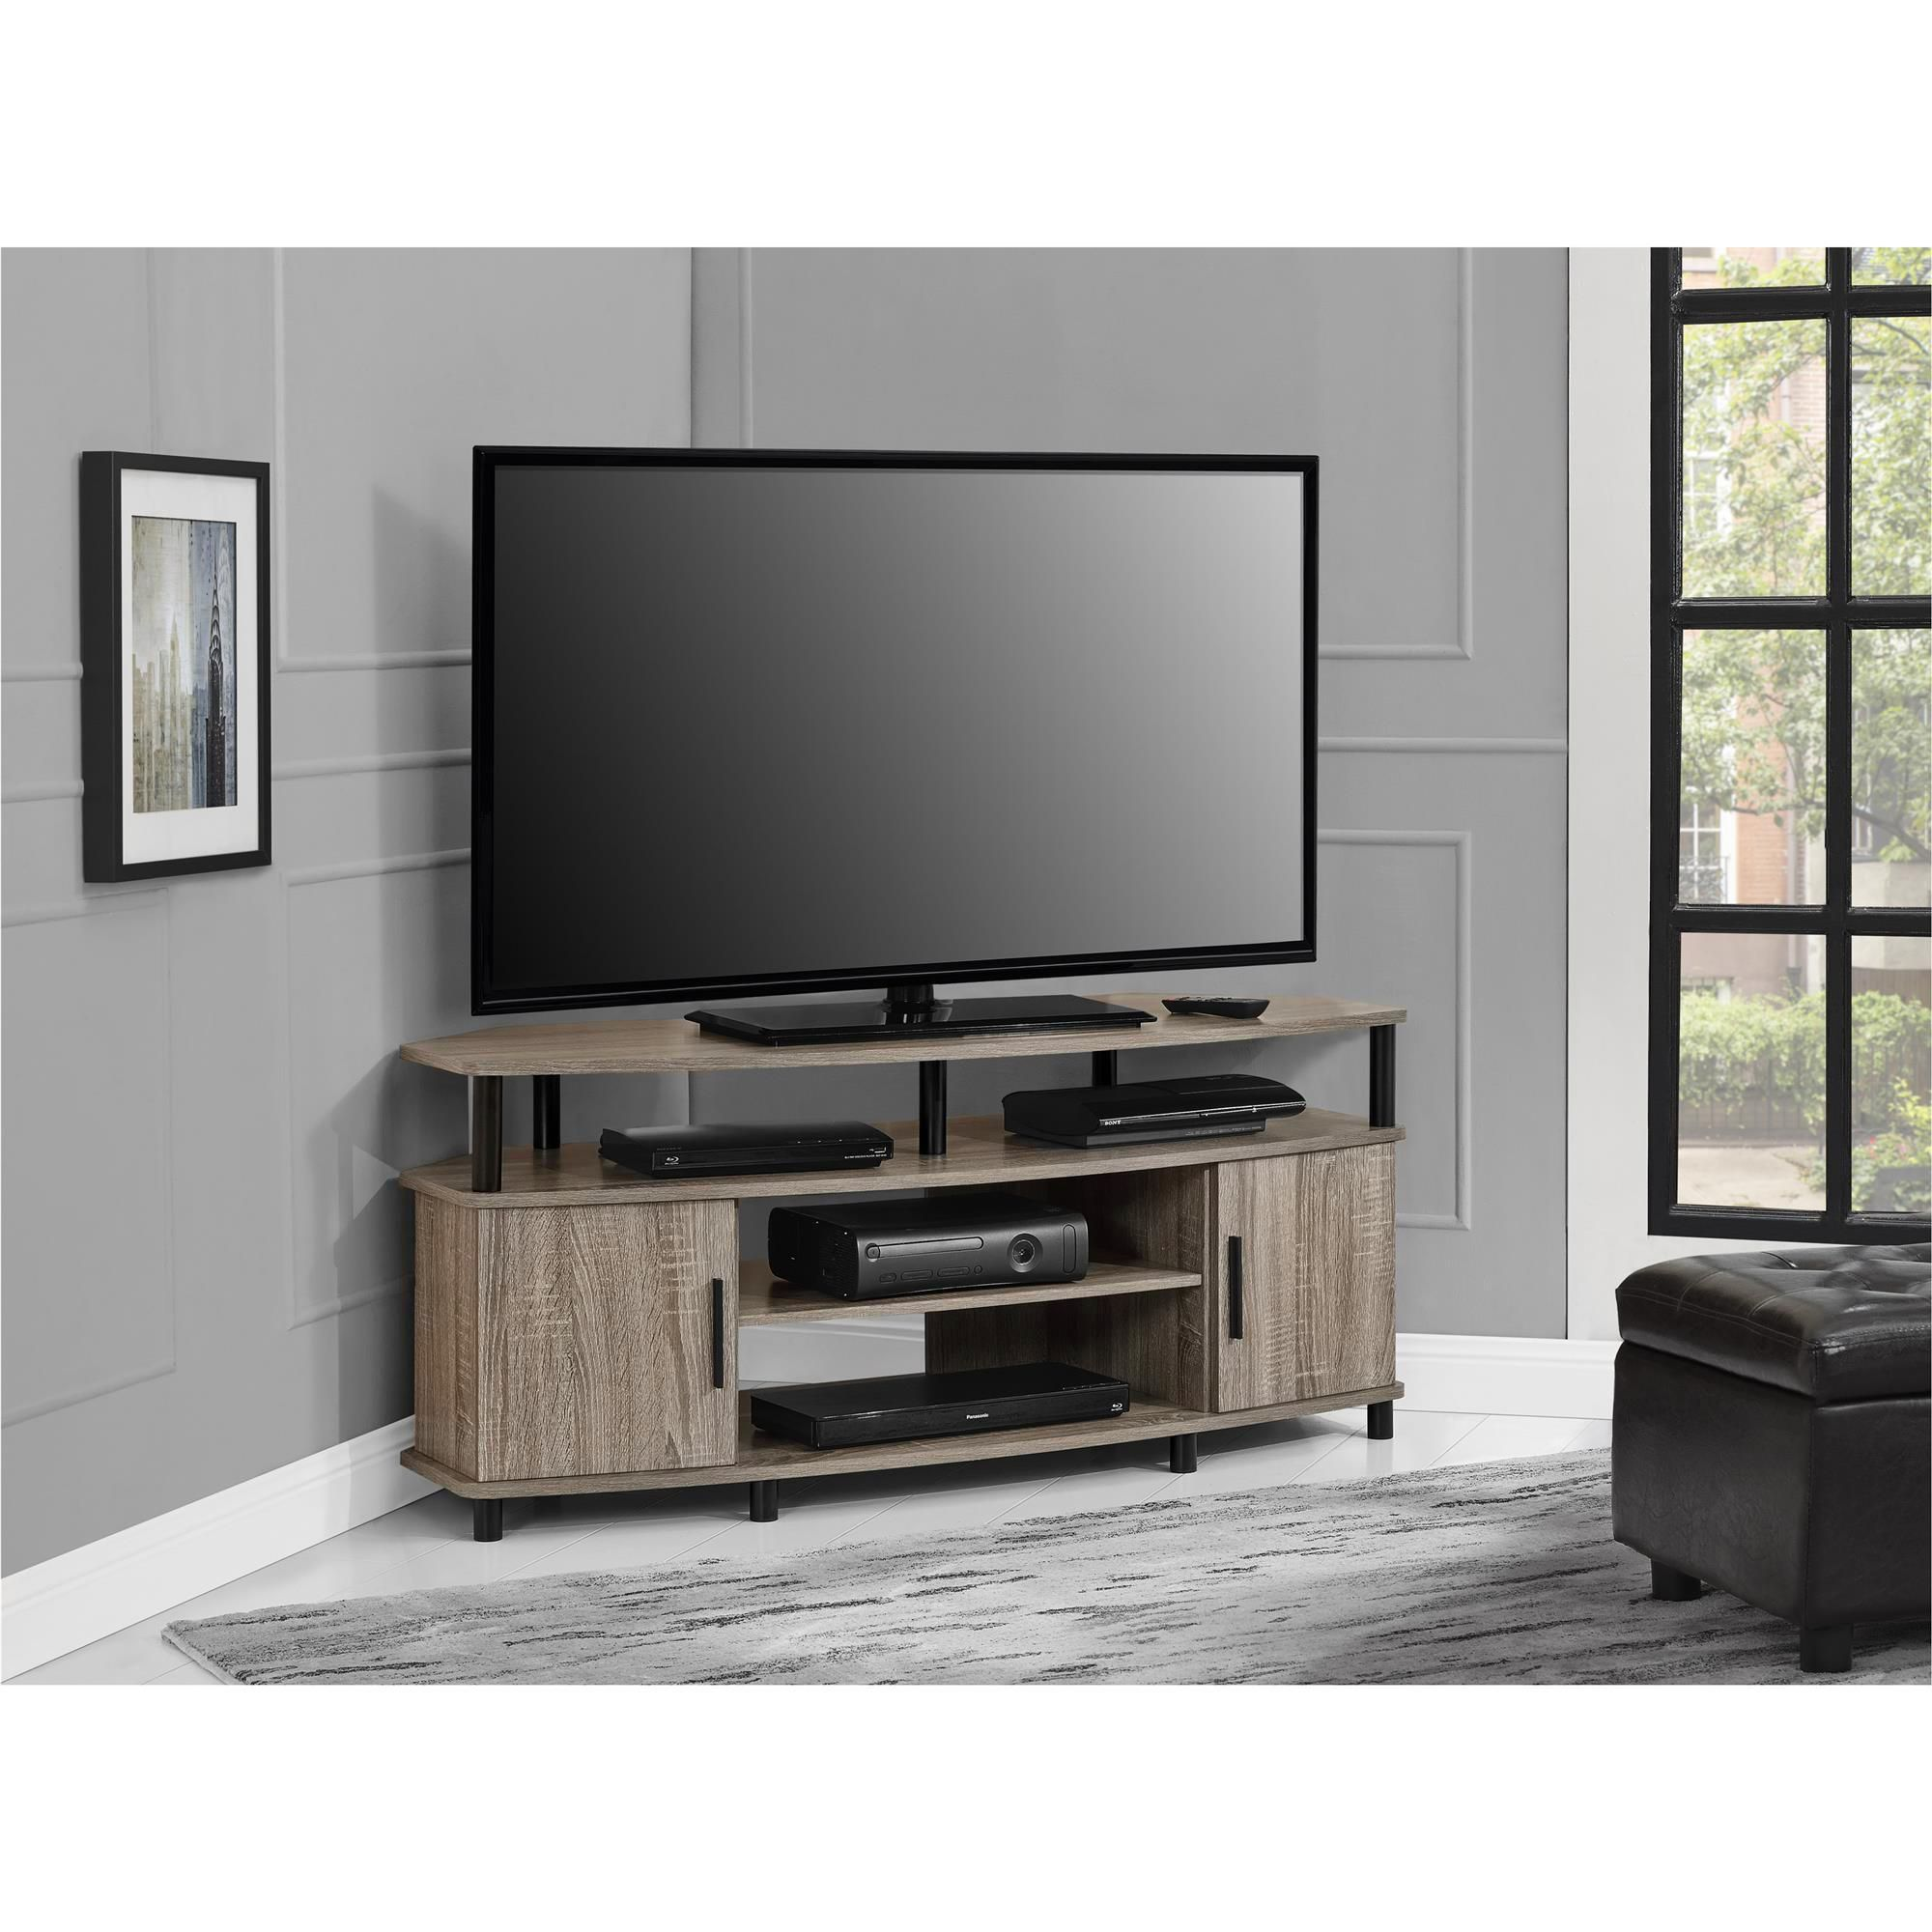 Dorel home furnishings carson distressed gray oak corner tv stand